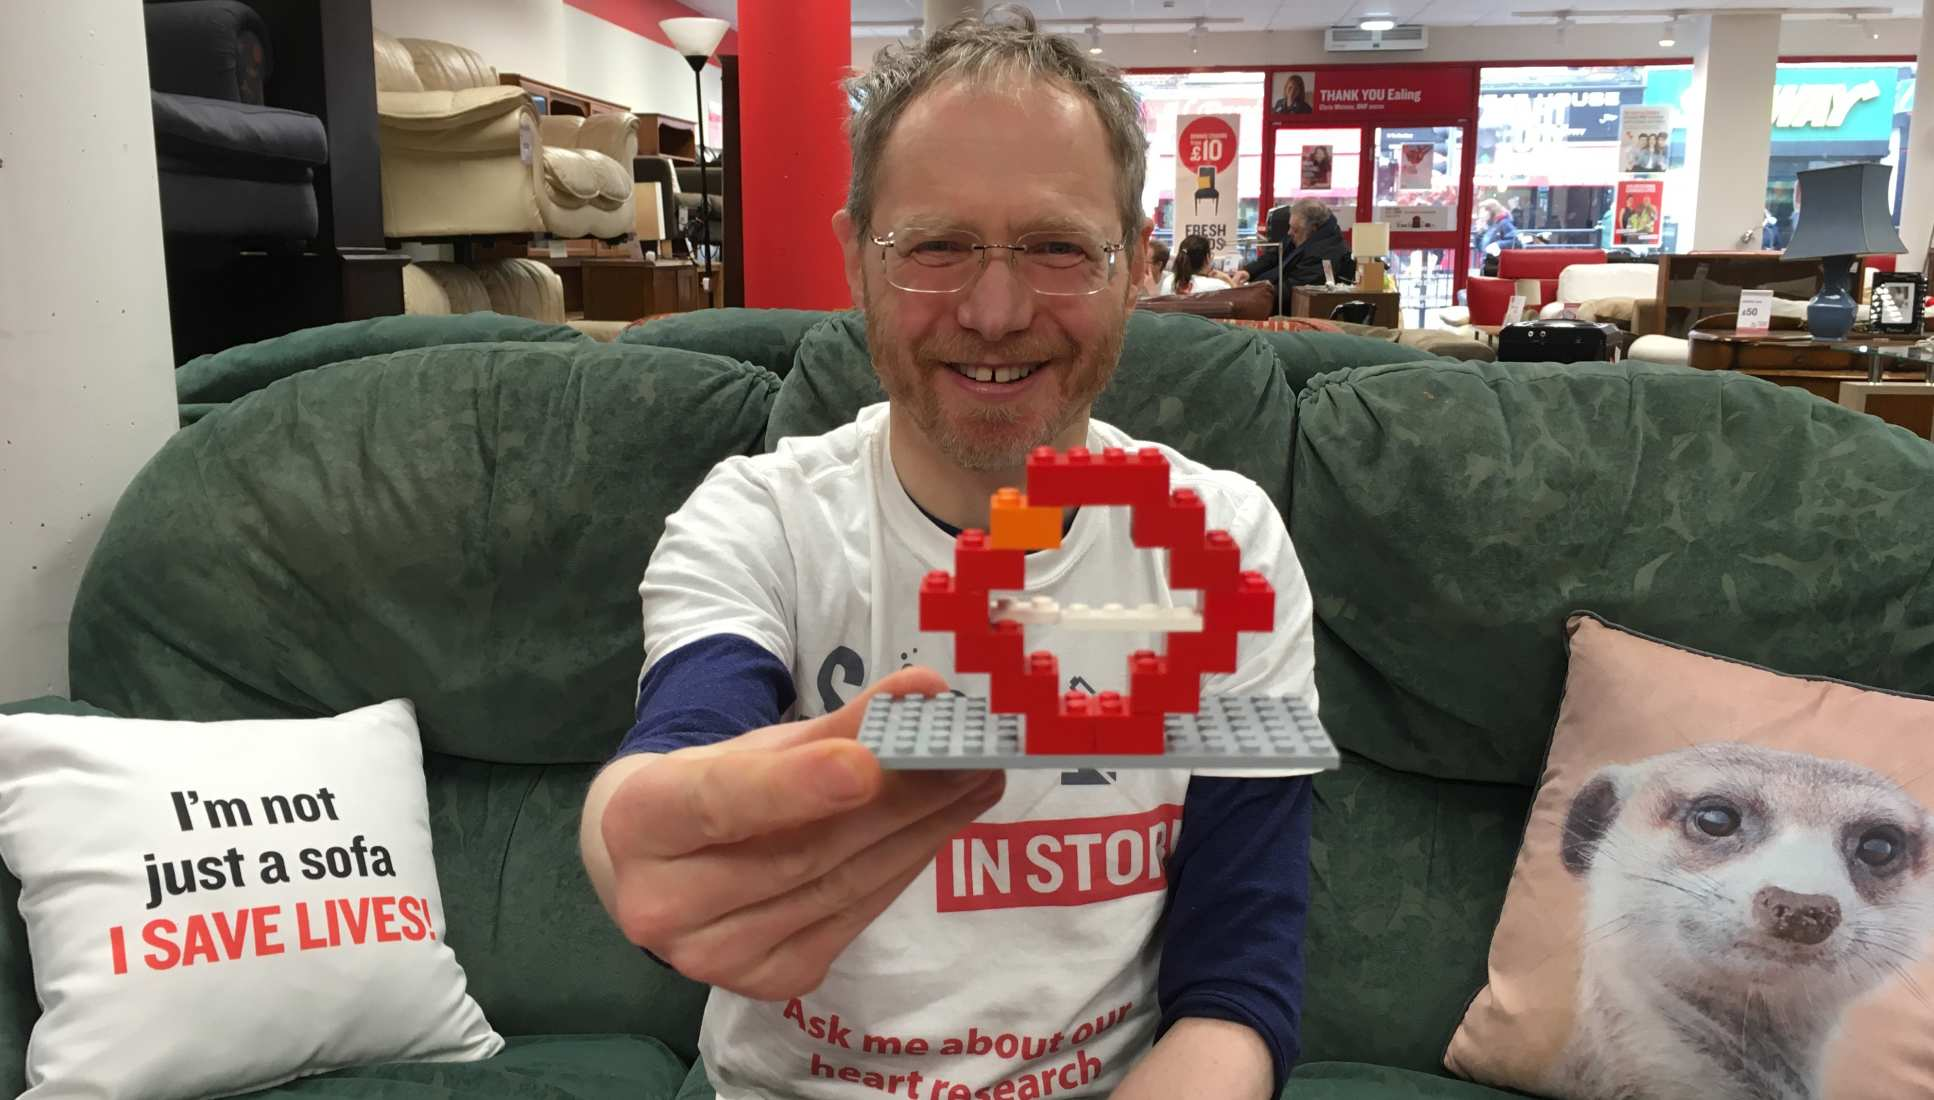 Researcher with lego blood vessel